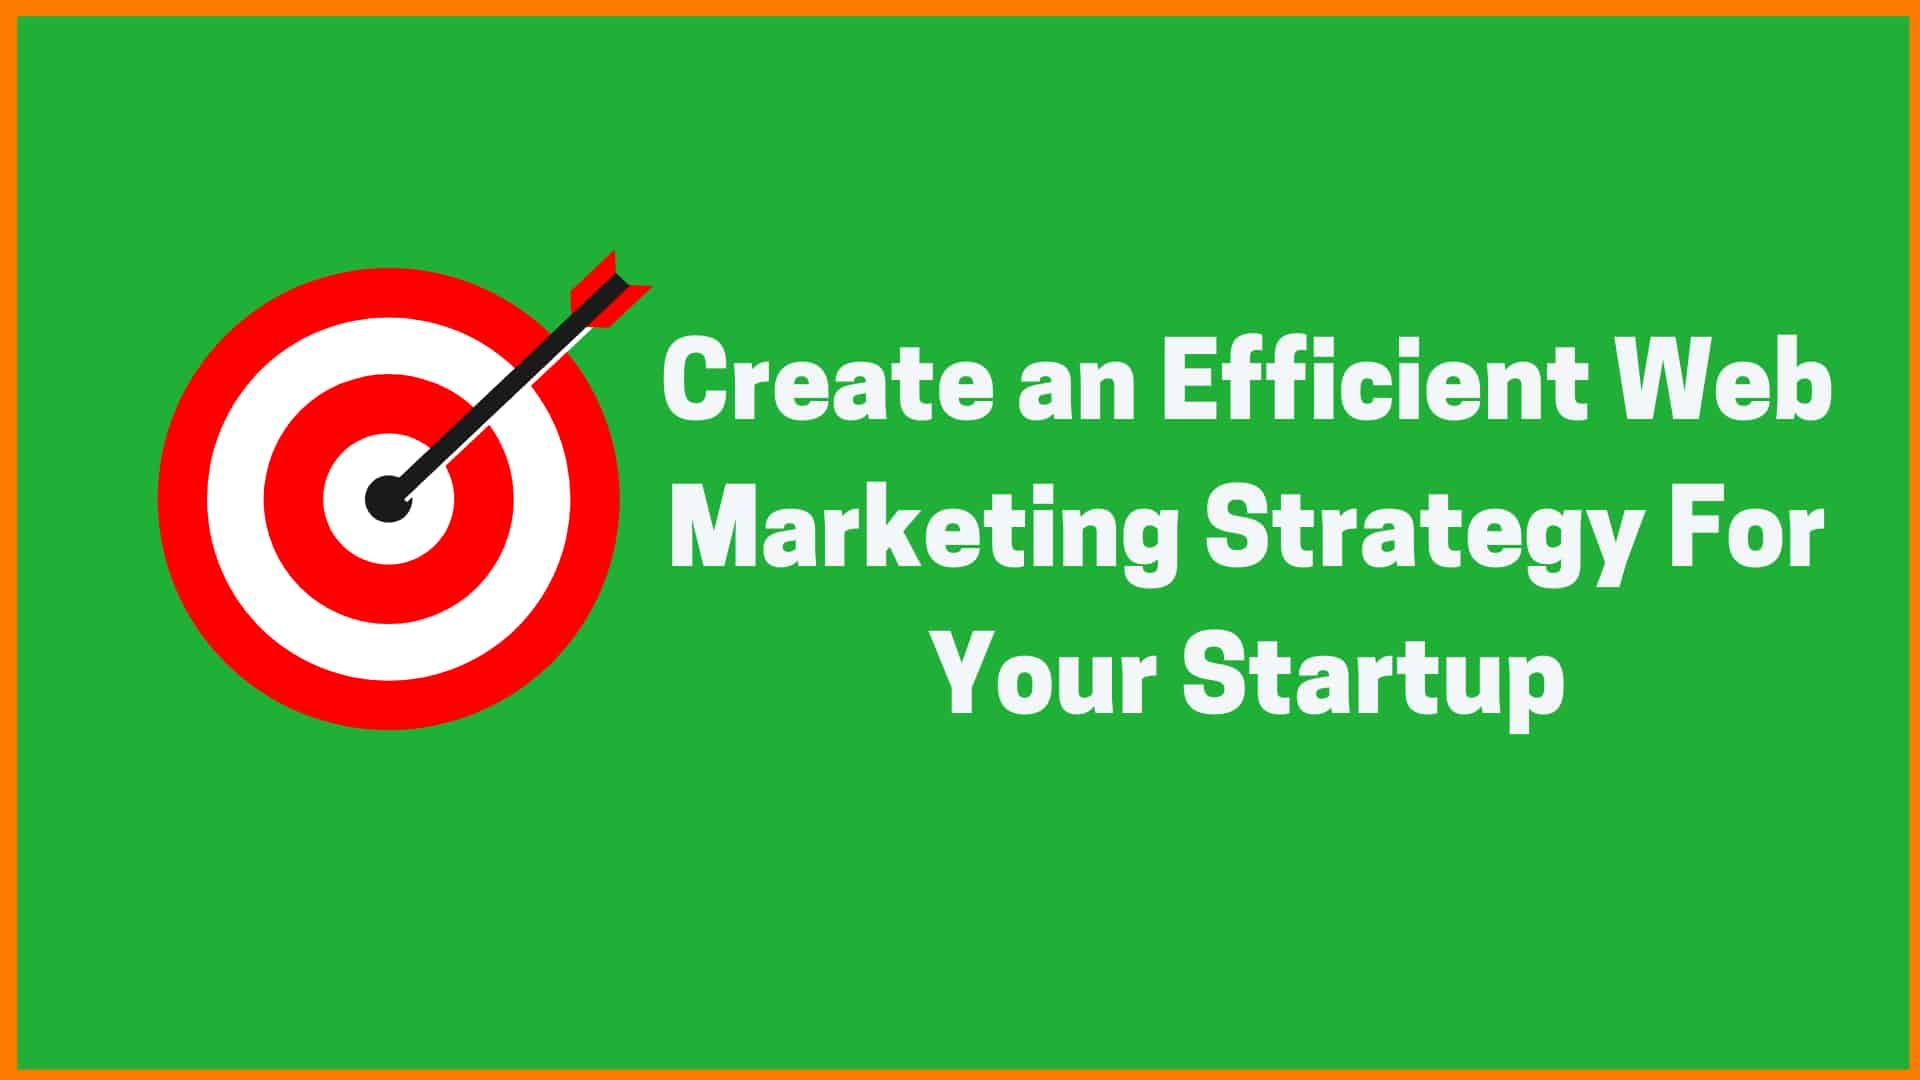 How to Create an Efficient Web Marketing Strategy For Your Startup